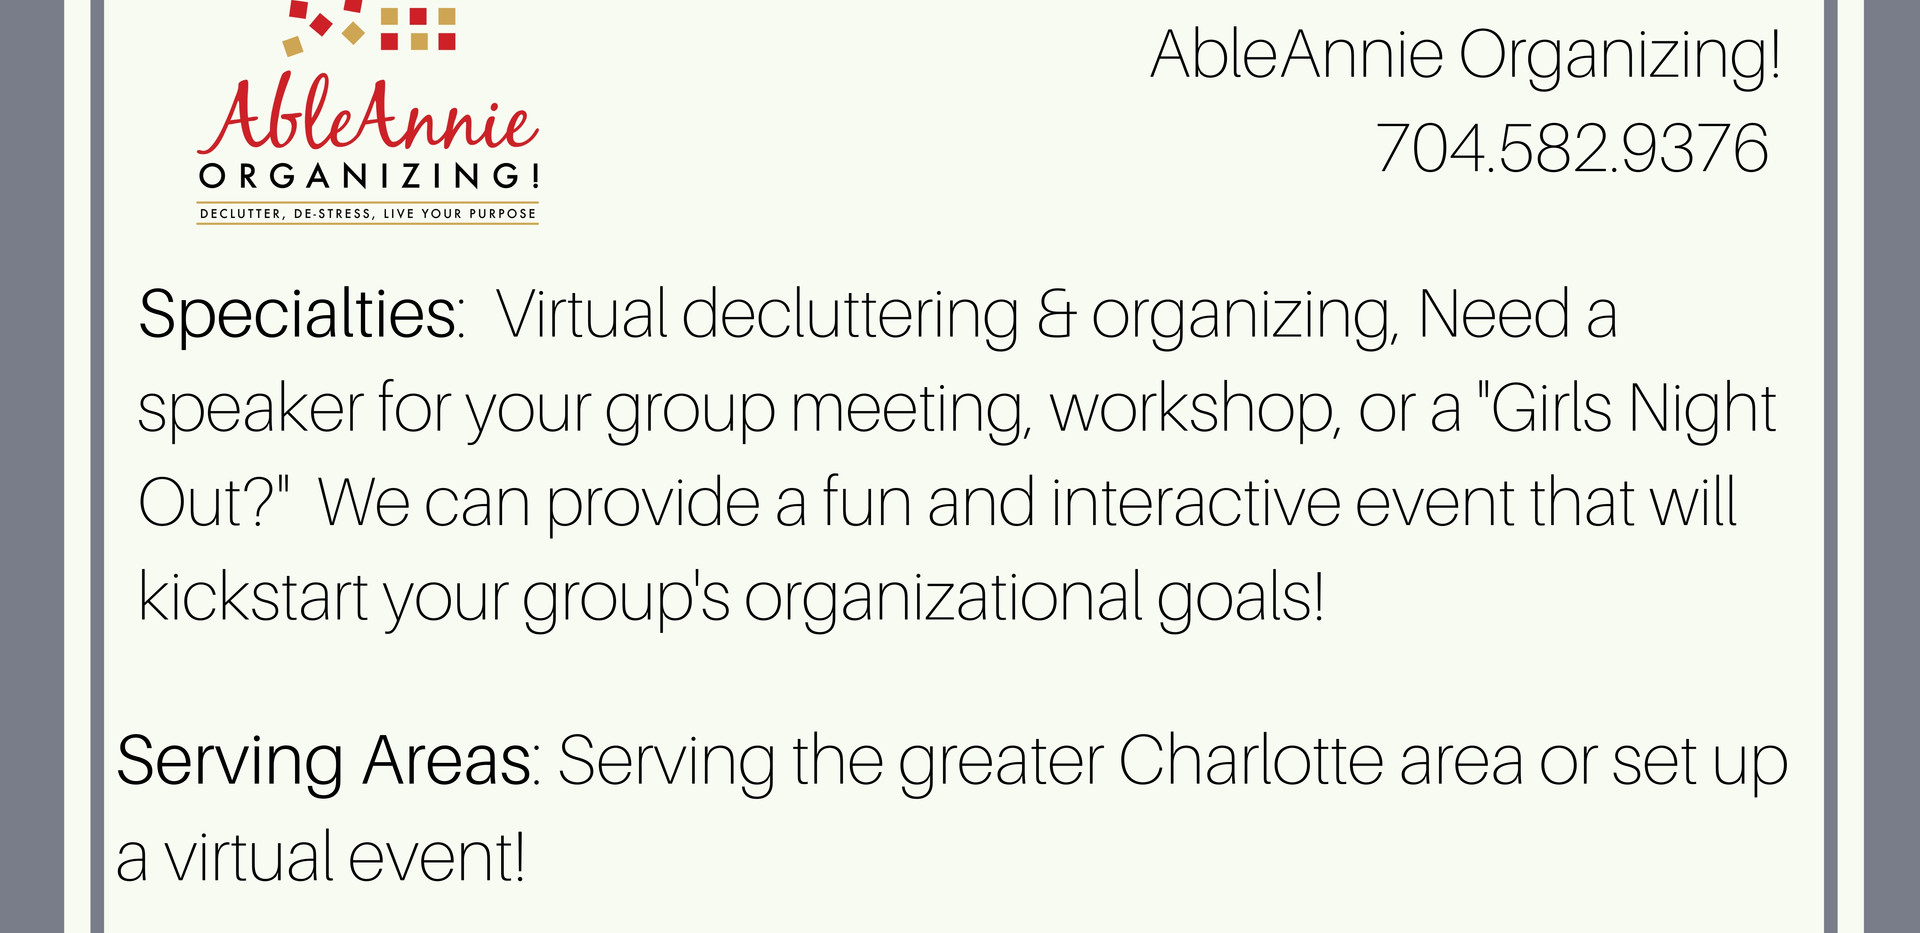 Able Annie Organizing!